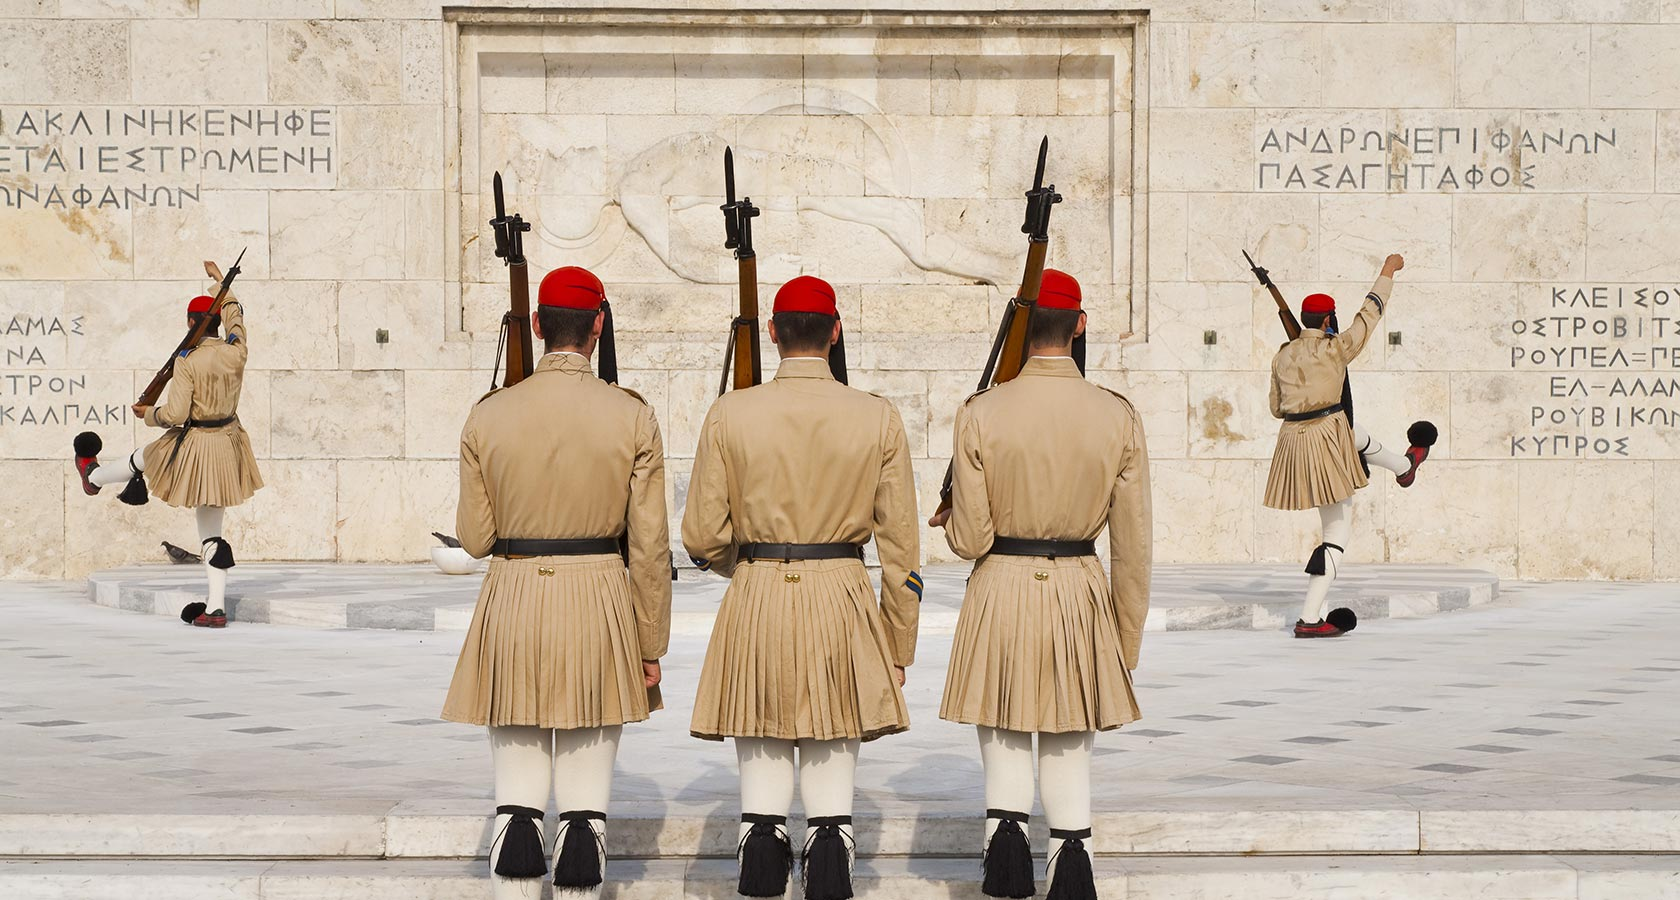 Ceremonial Changing Guards at Syntagma Athens Greece – Greek Parliament